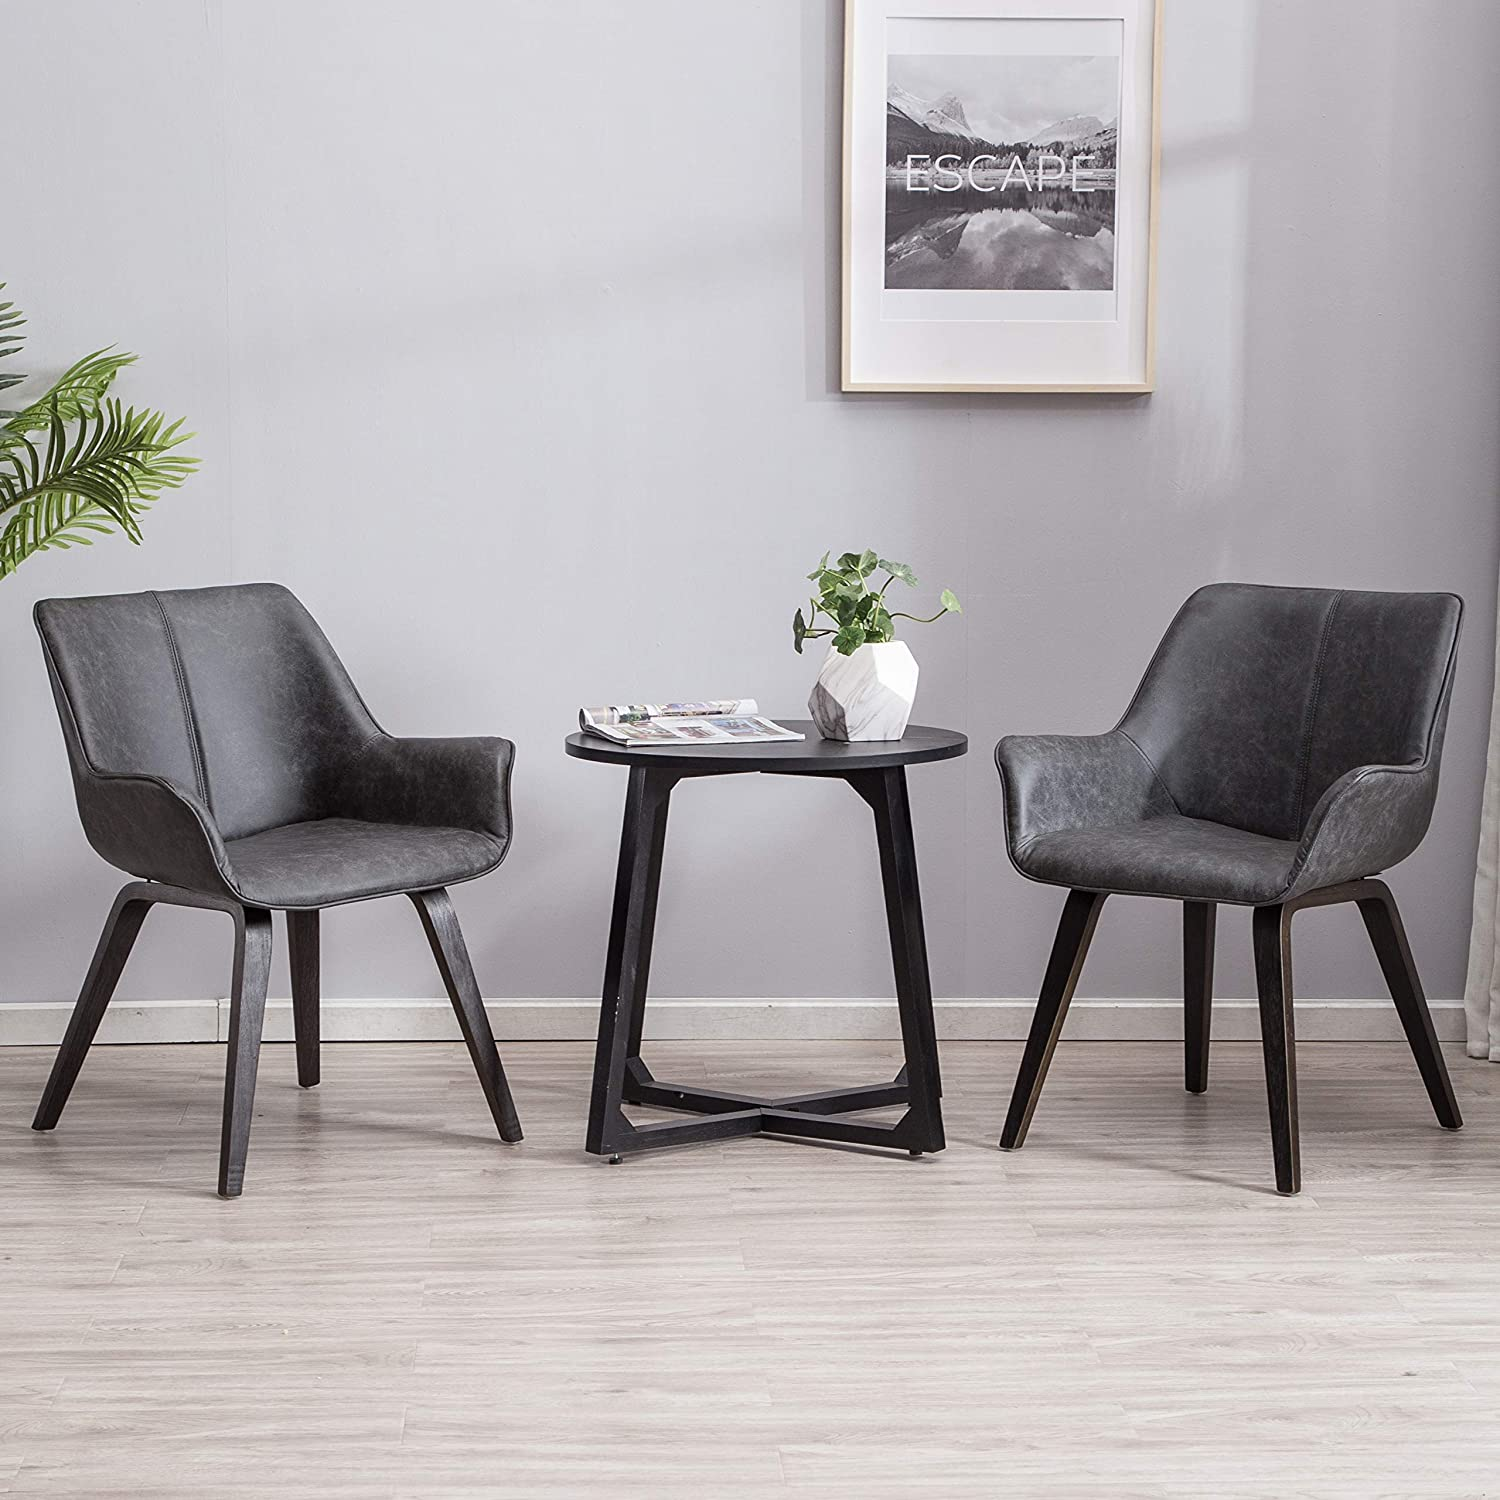 YEEFY Charcoal Leather Living Room Room Chairs with arms Contemporary  Living Room Chairs Set of 2 (Charcoal)